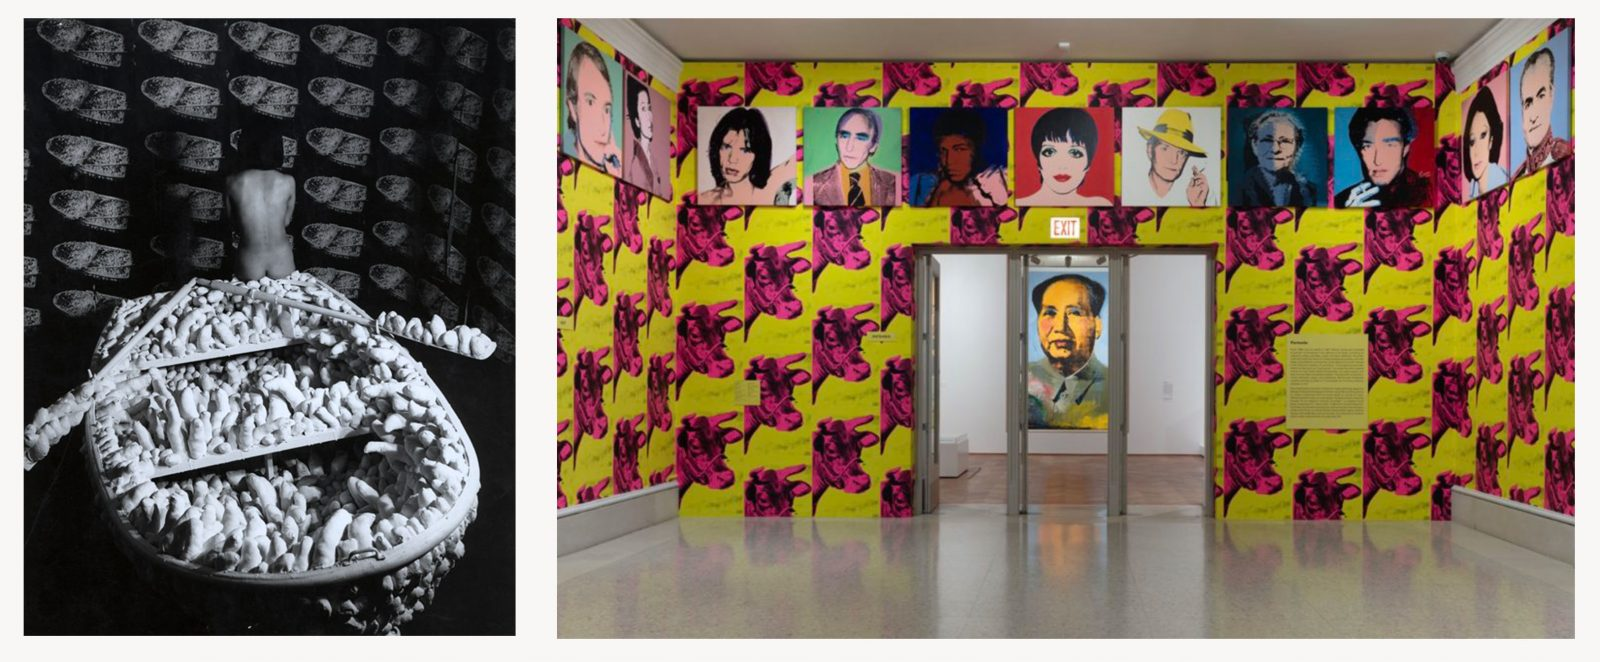 On the left is a black and white photograph of Yayoi Kusama turning her back to the camera, sitting naked on a boat covered of fabric penises with the wallpaper on the bacckground being a mosaic of the same boat, while on the right is a photograph of a room covered with a wallpaper being a mosaic of pink cow heads on a yellow background